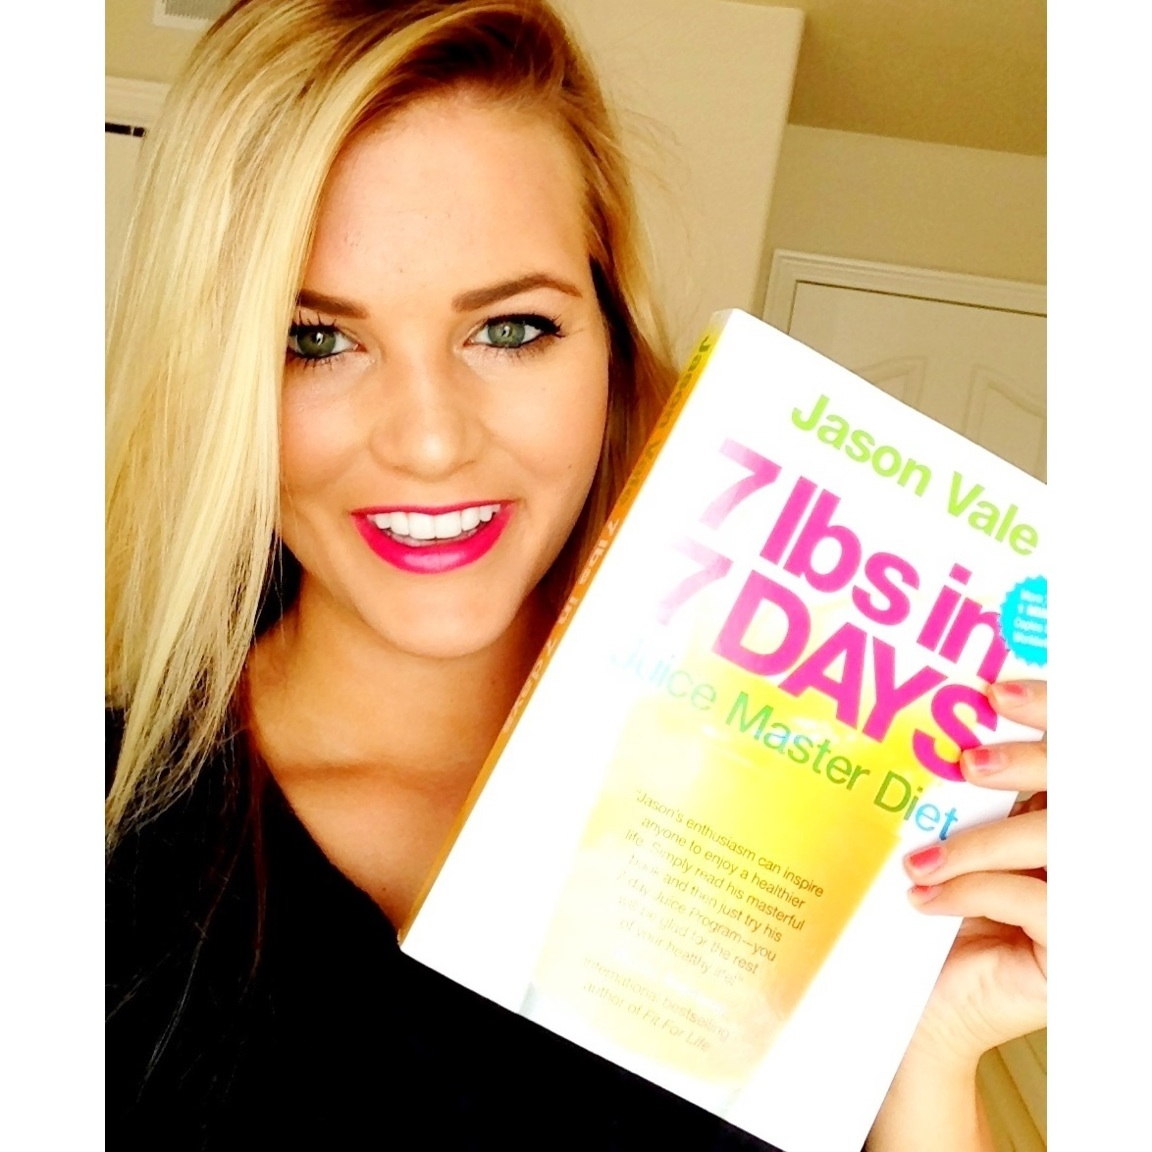 how to lose 7 lbs in 7 days